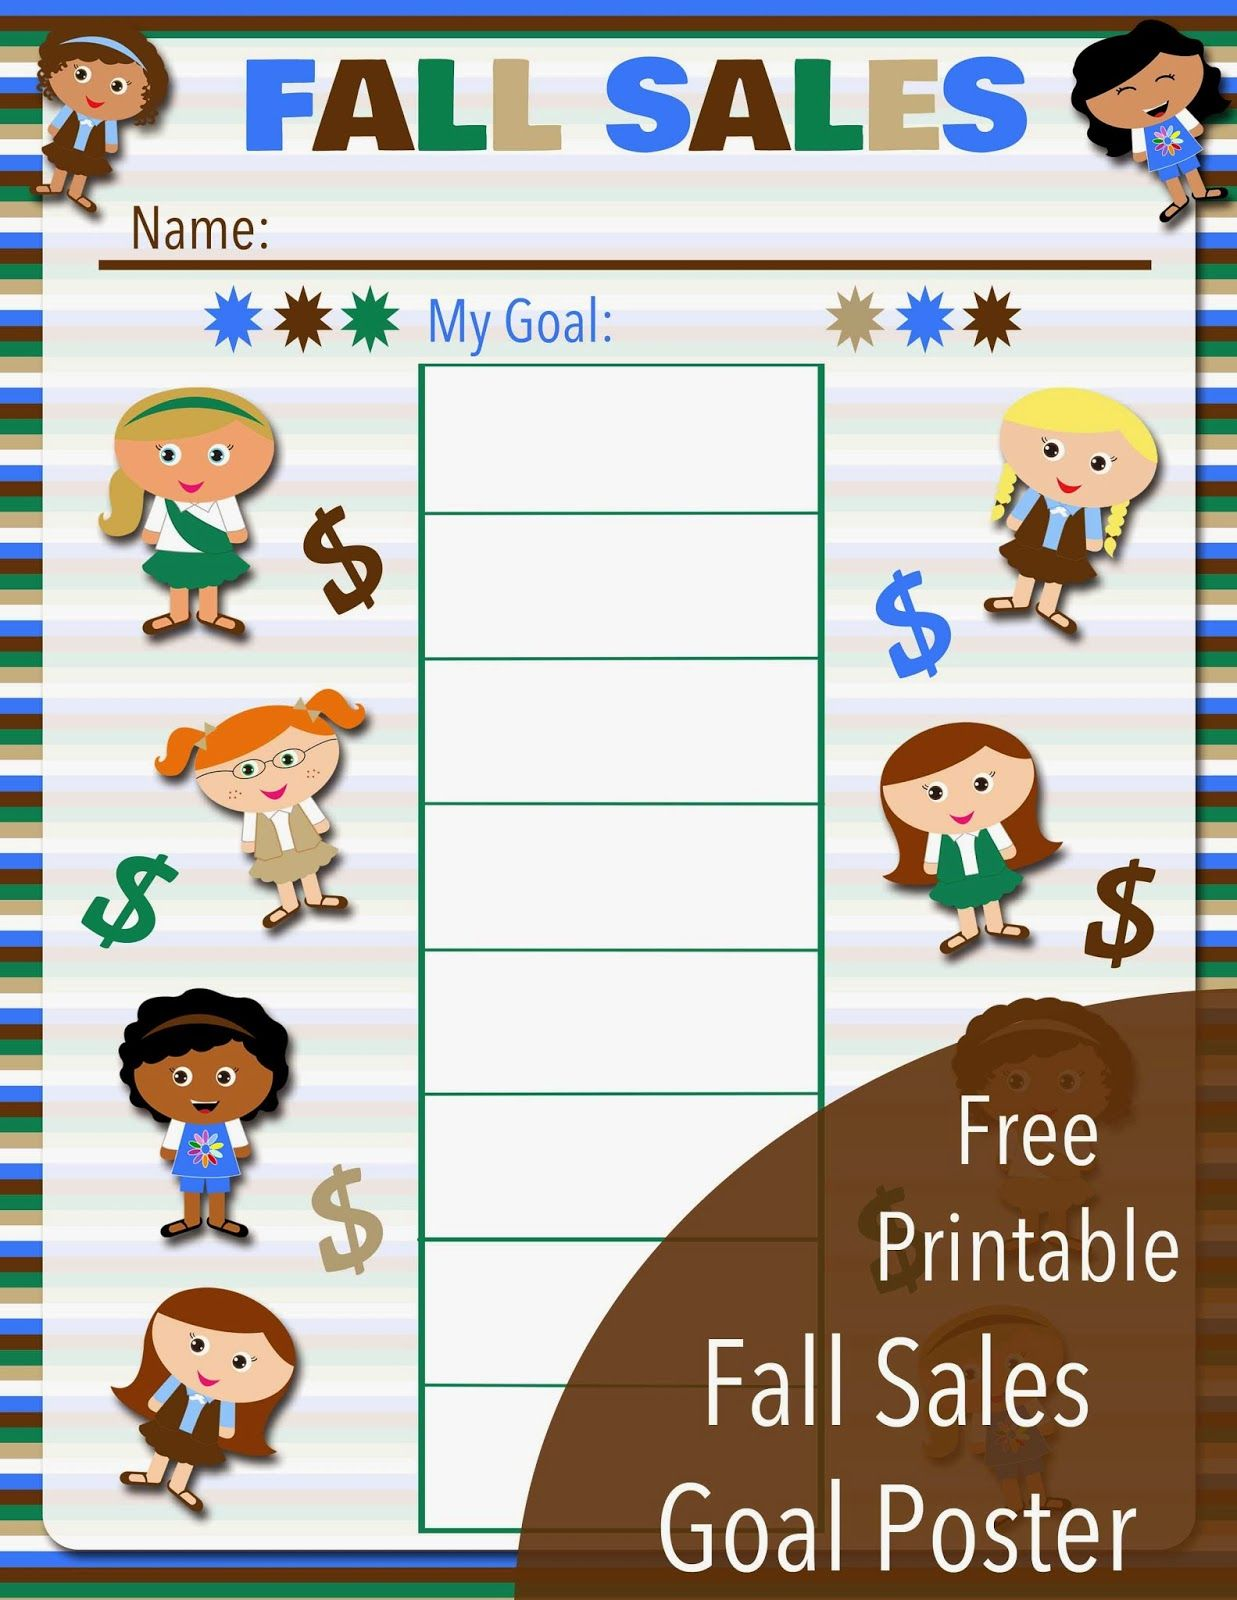 Free Printable Fall Sales Goal Poster For All Levels